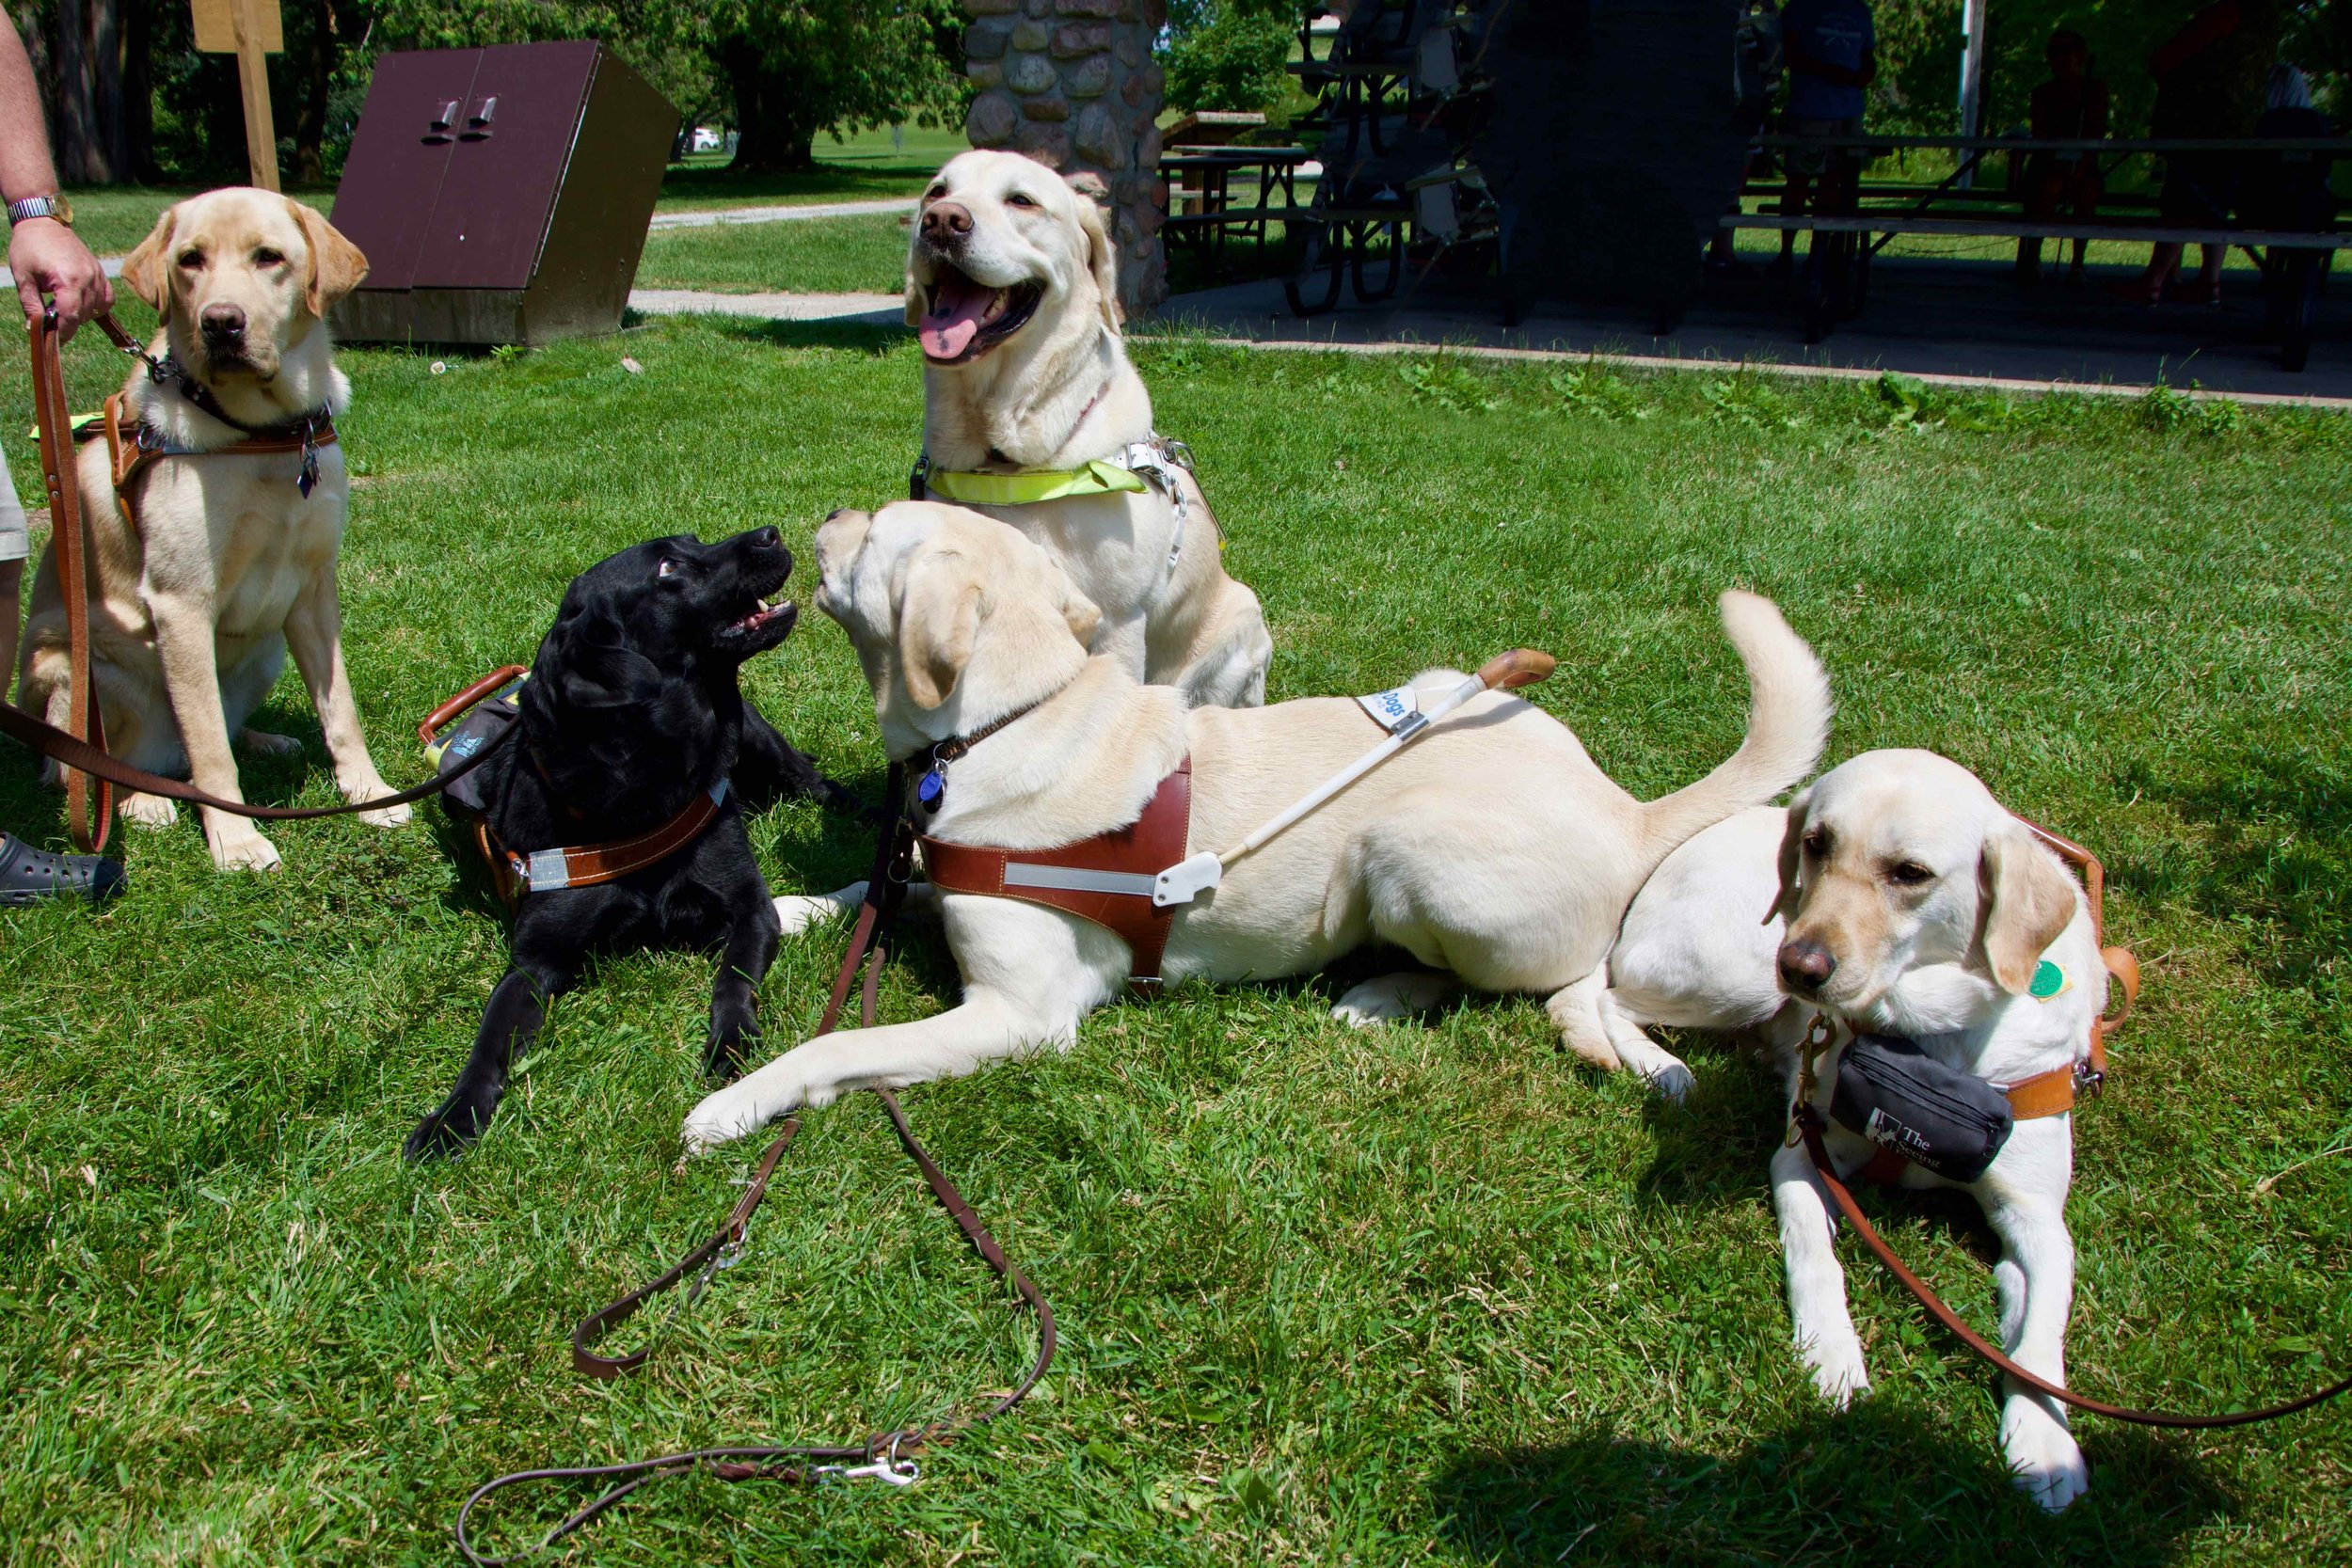 CCB Zoo Picnic - Casey, Frankie & Mixie behaving, Lois & Akira Misbehaving